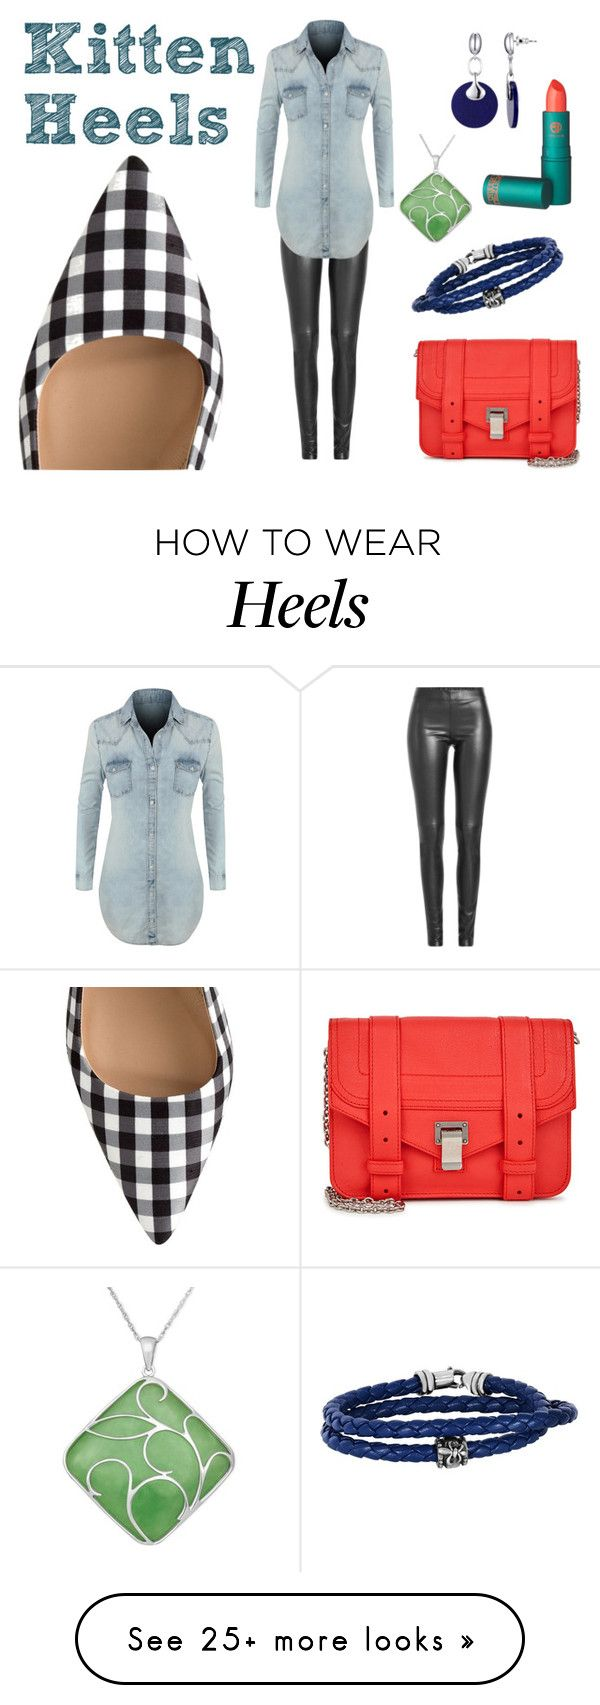 """gingham and kitten heels"" by north40designs on Polyvore featuring Joseph, LE3NO, Proenza Schouler, Lipstick Queen, Phillip Gavriel, gingham, kittenheels, springtrend and coralpower"